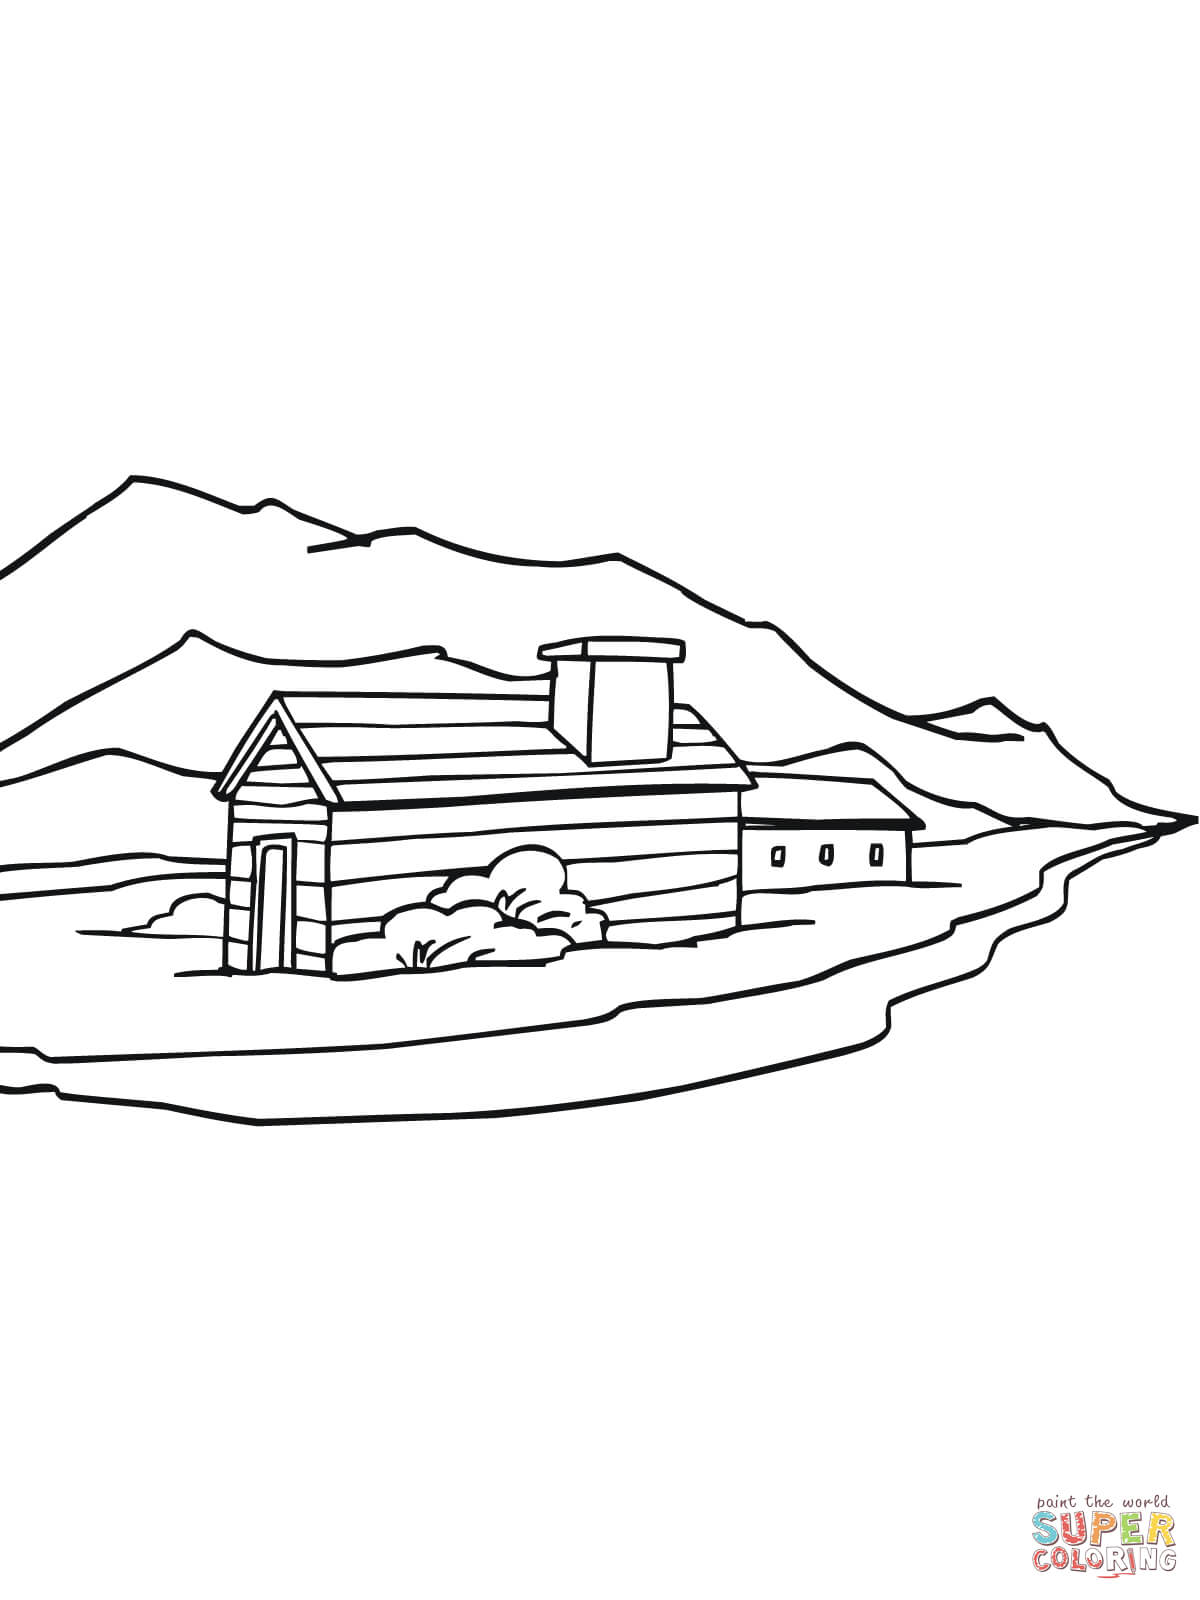 1200x1600 Norway Rural Landscape Coloring Page Free Printable Coloring Pages